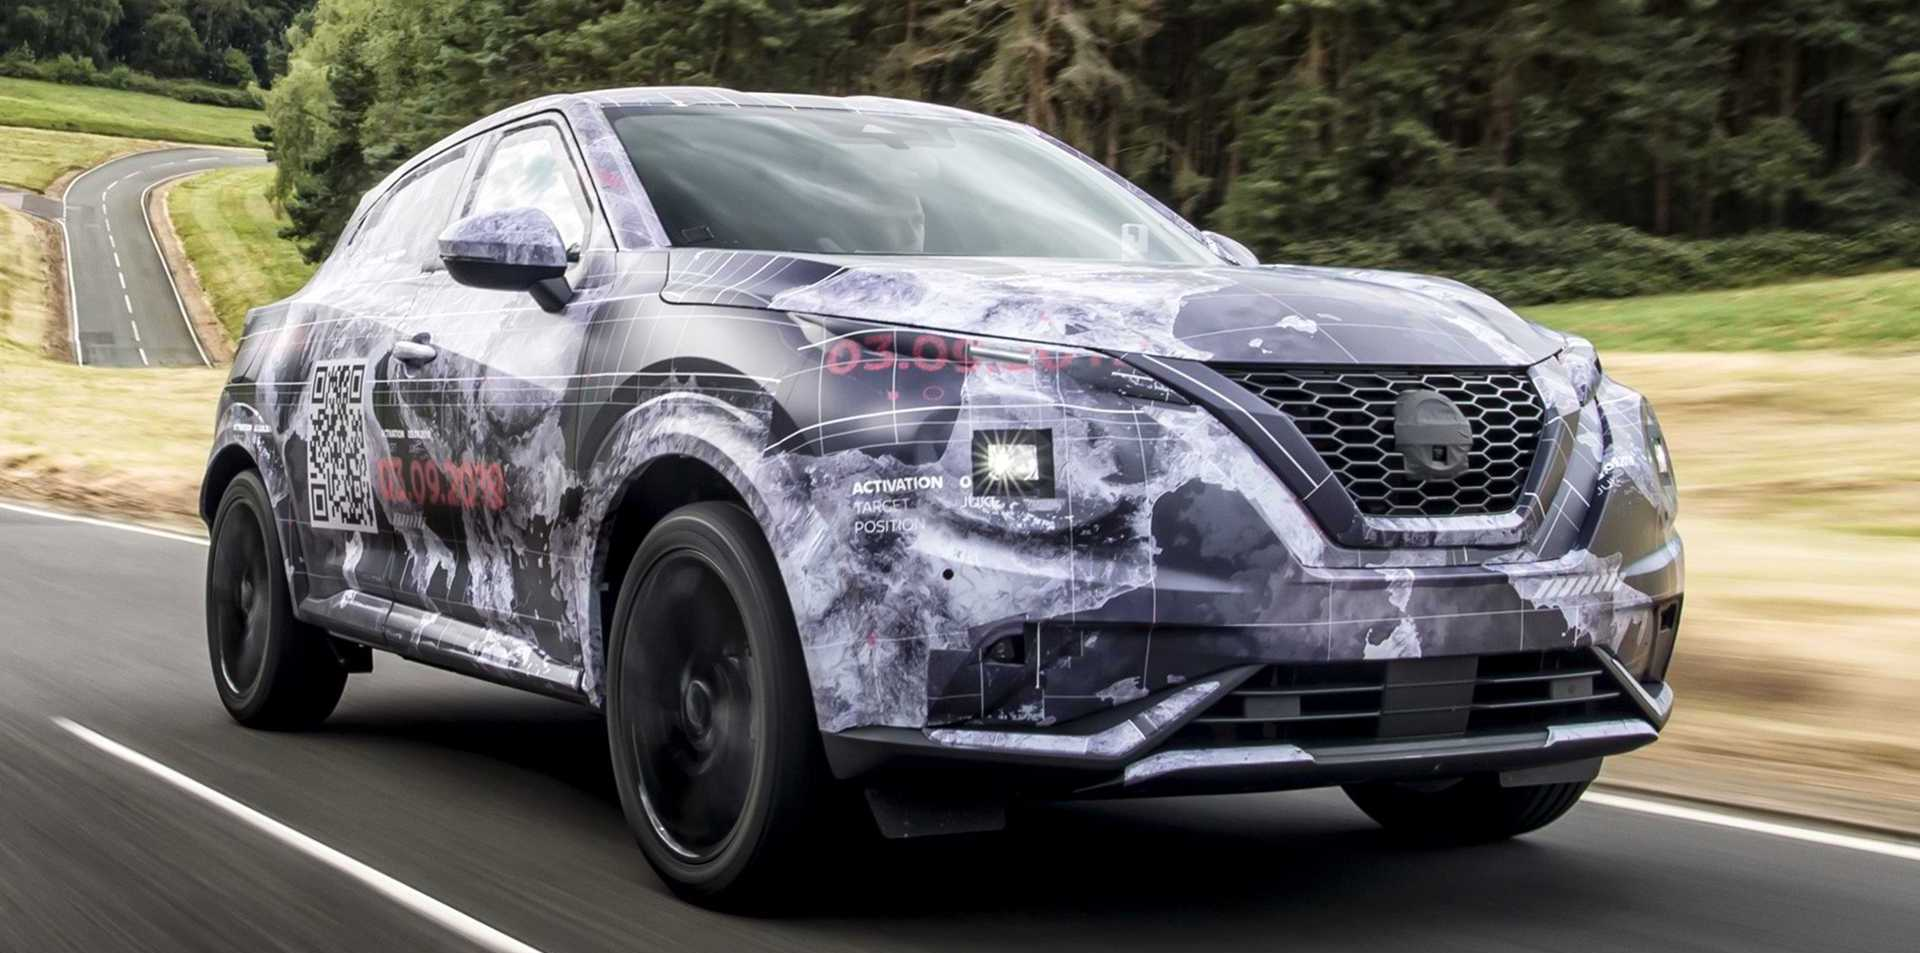 2020 Nissan Juke Teased With Camouflaged Prototypes, New Info